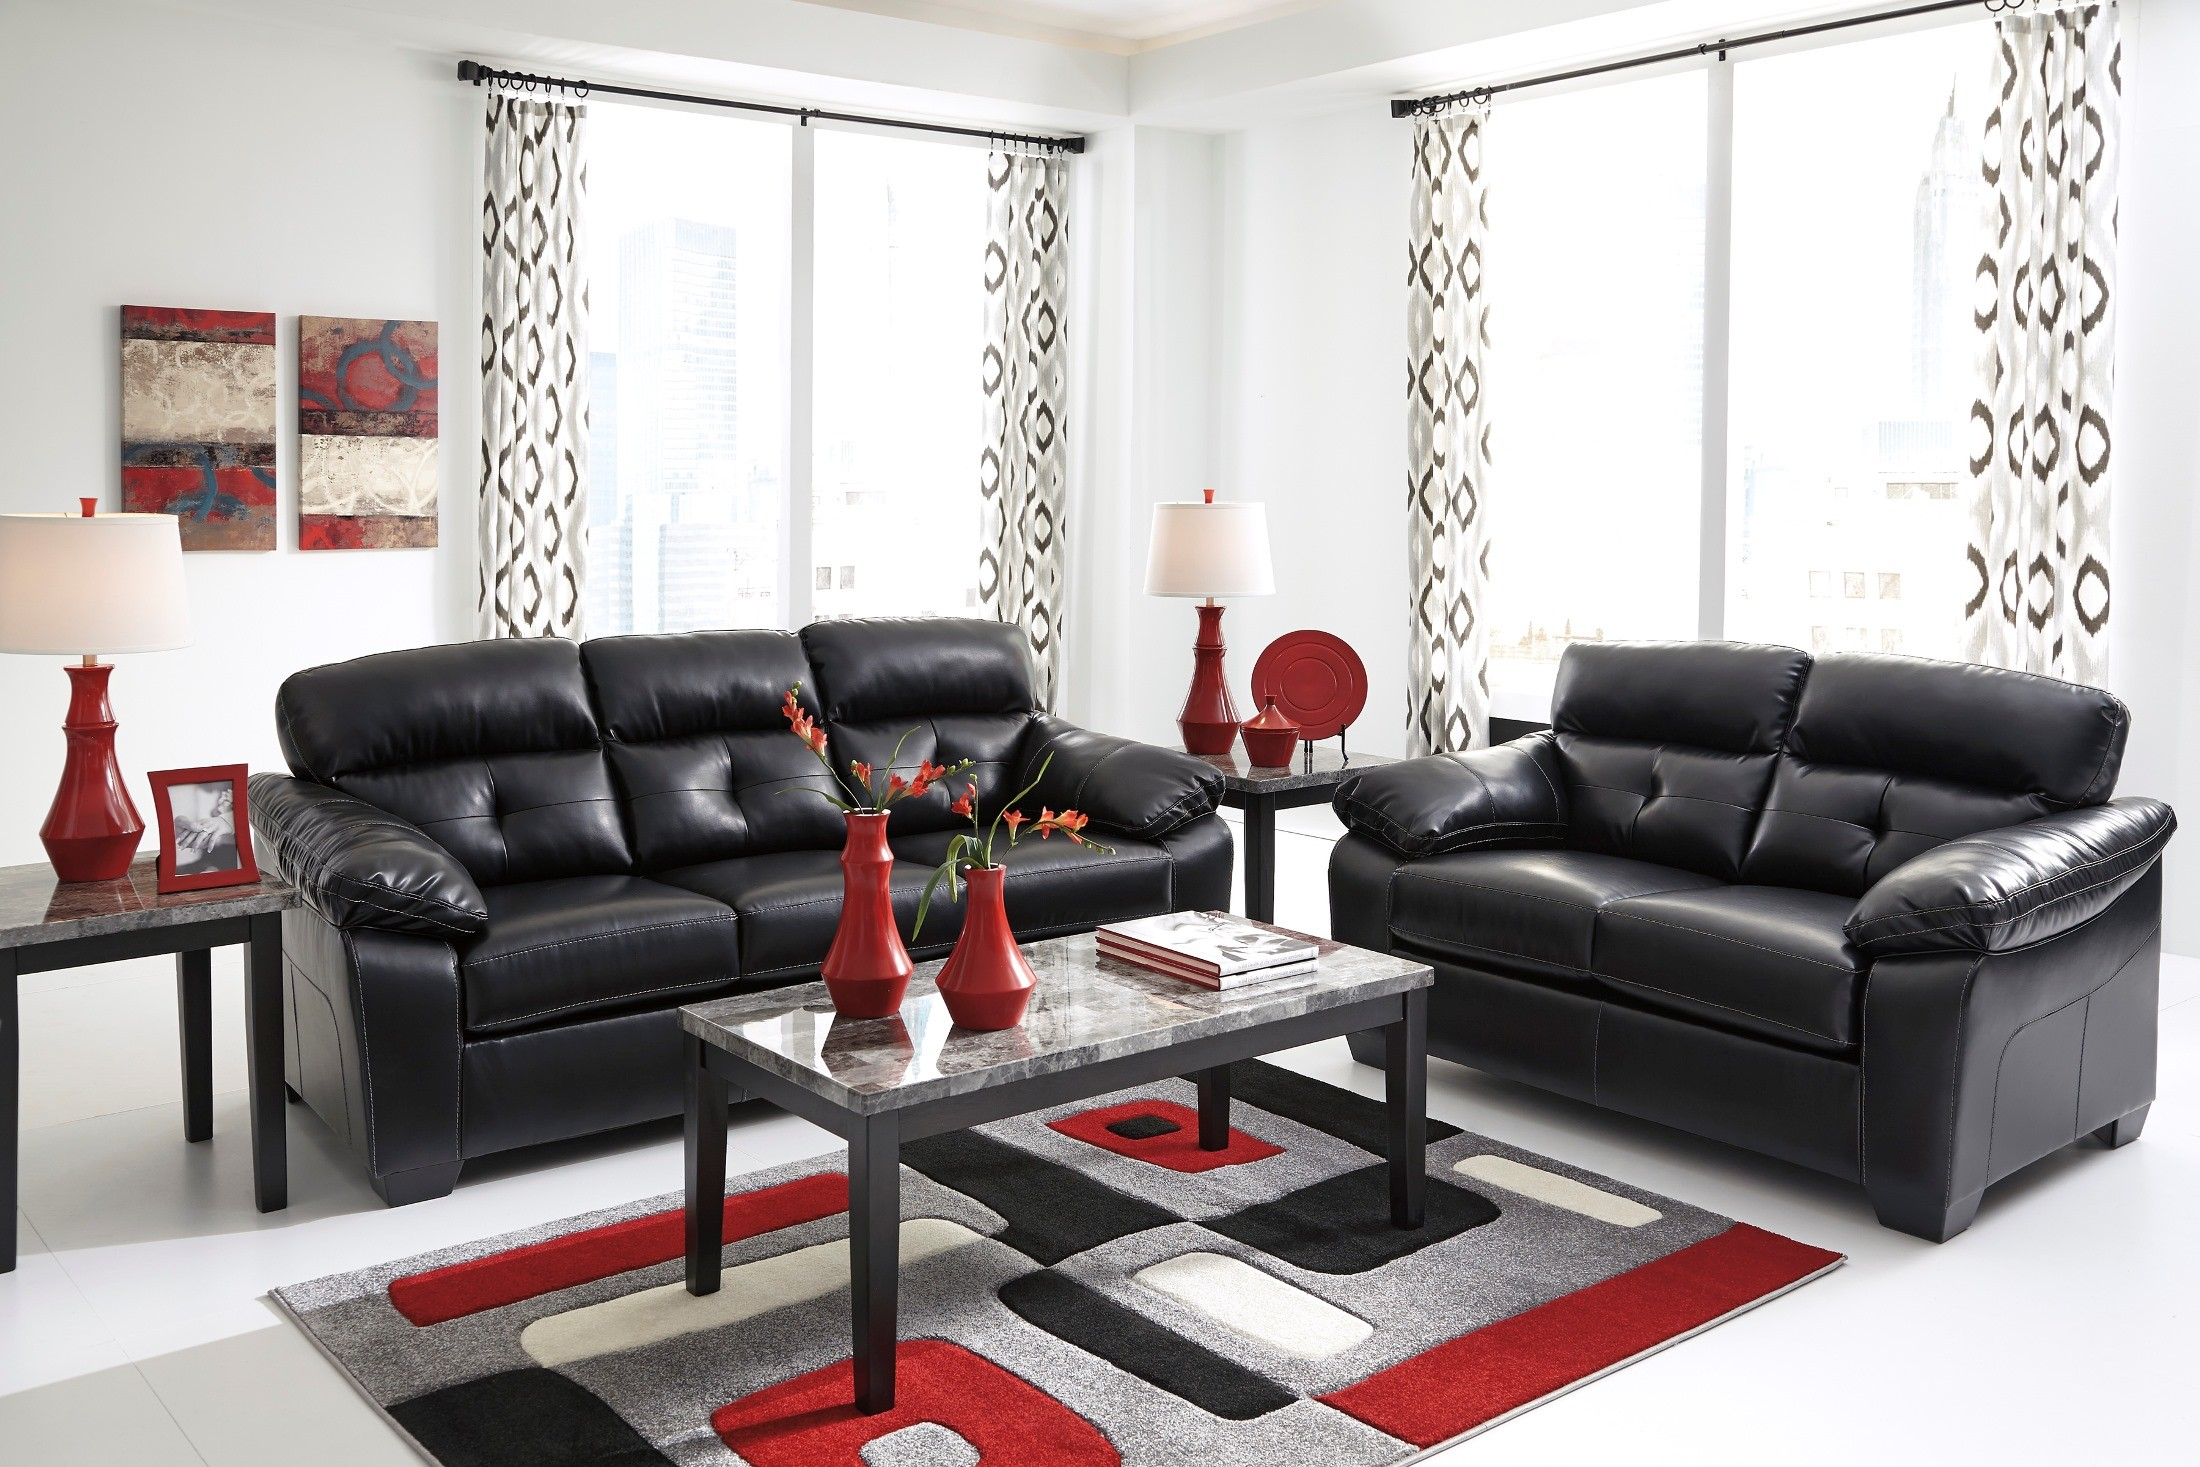 sofa sectional ashley durablend best way to clean stains bastrop midnight living room set from ...